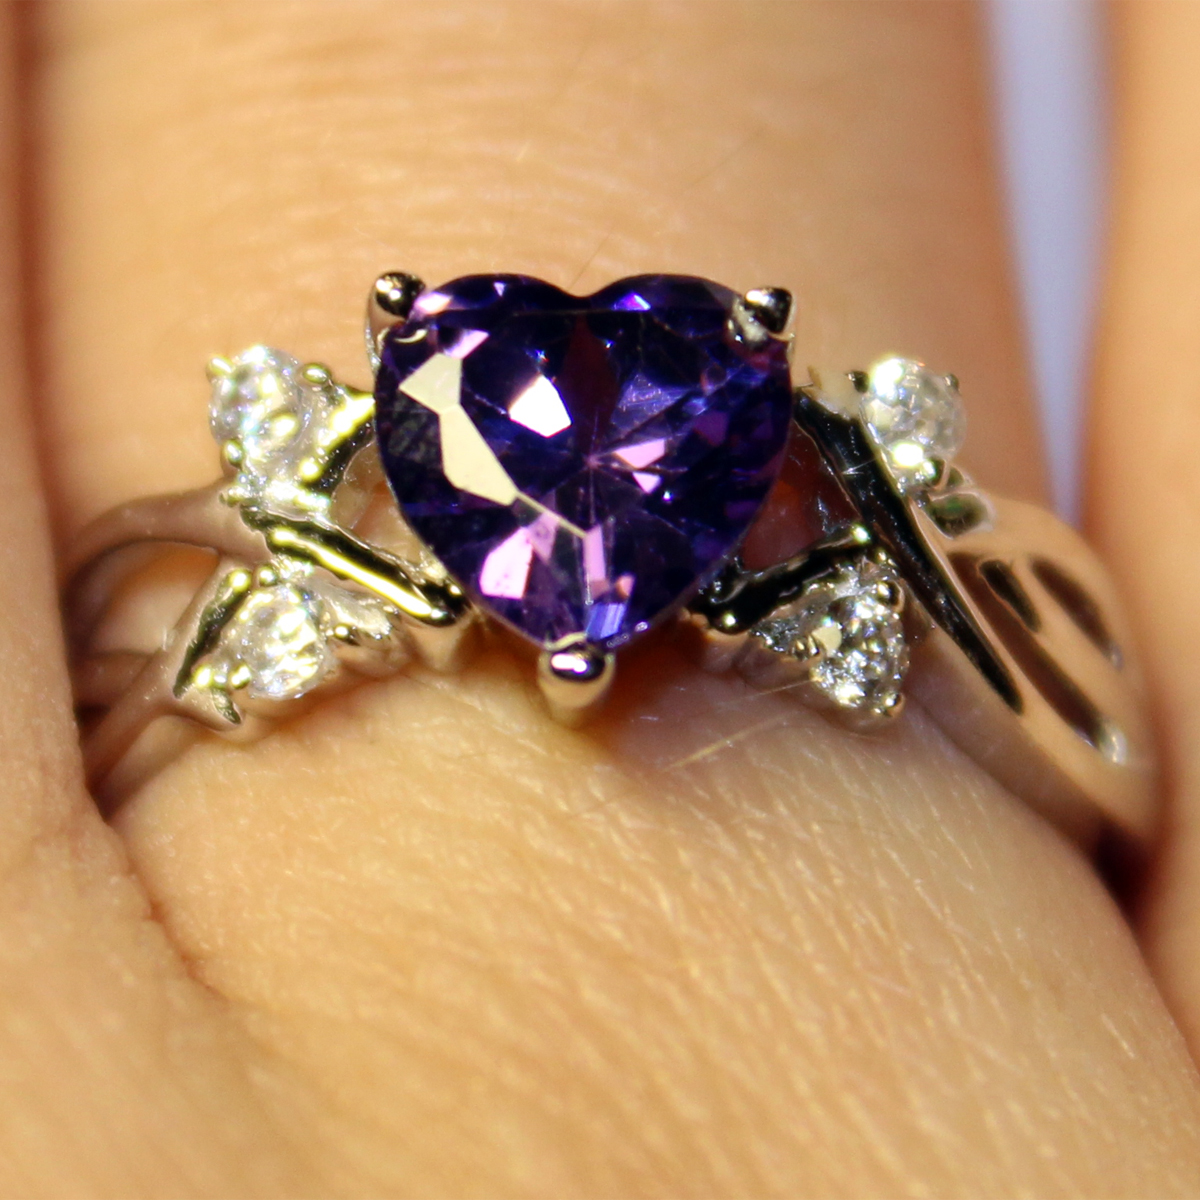 Cheery Amethyst Heart Shaped Promise Ring Blog Promise Rings What Is A Promise Ring What Does It Mean Wsletter Kaijewelsmeaning Promise Ring Kj 01m wedding rings What Is A Promise Ring